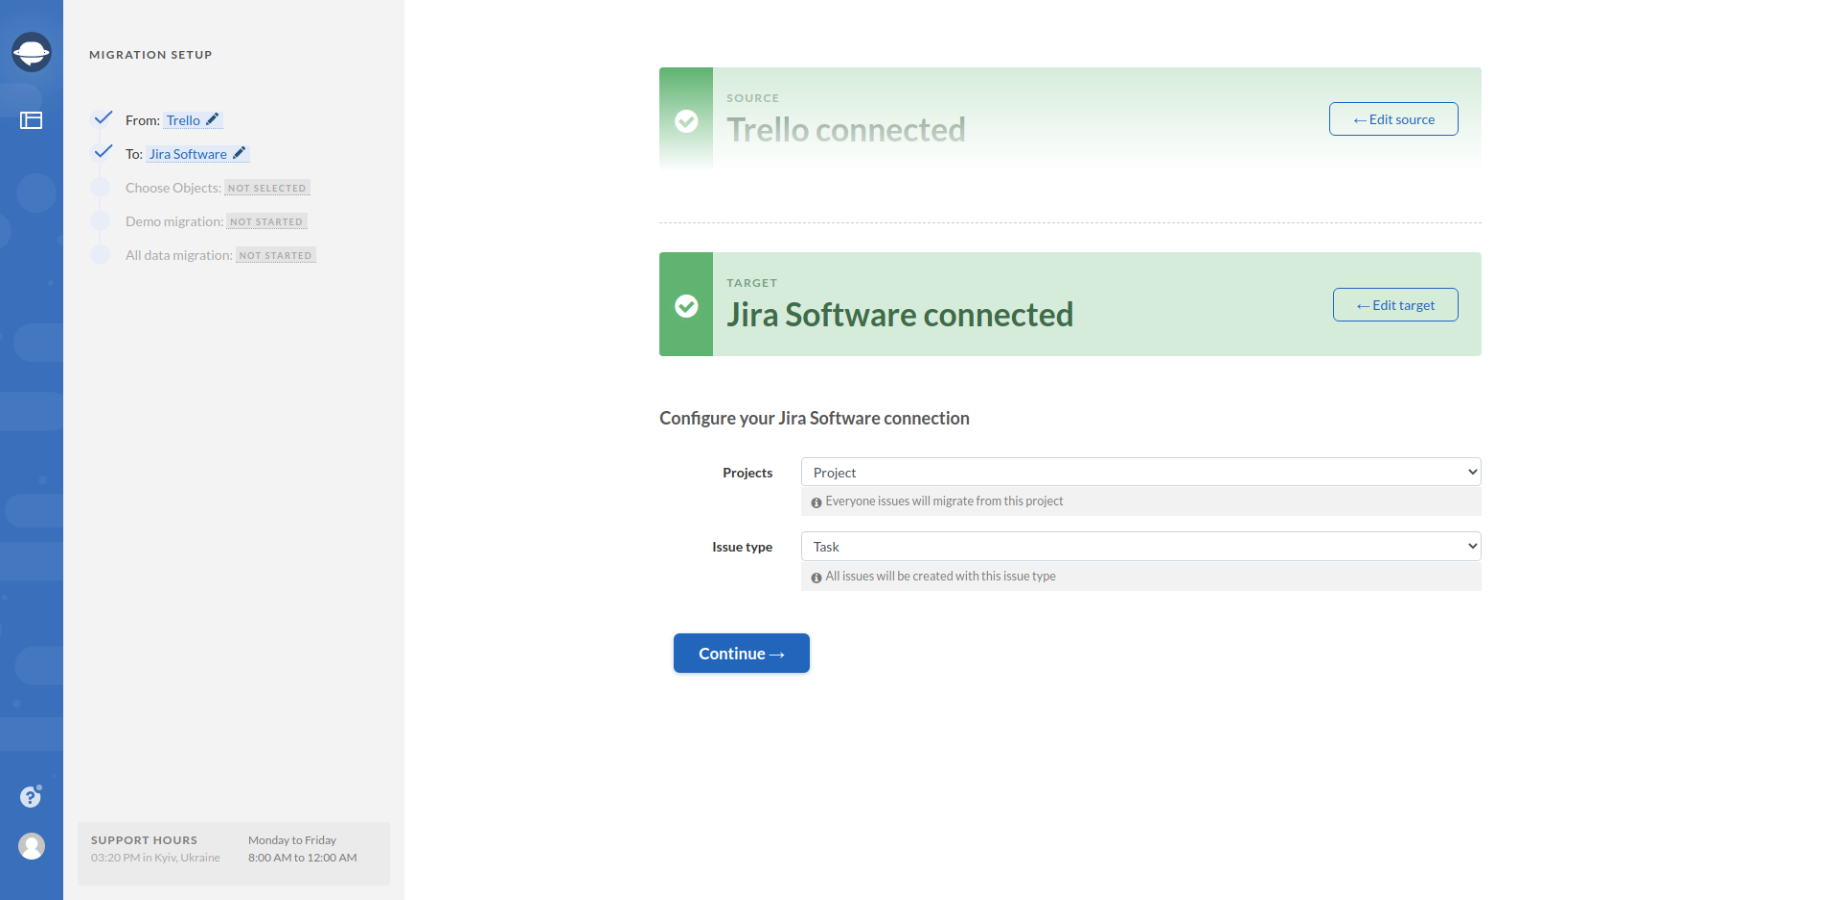 Configuring Jira Software Connection